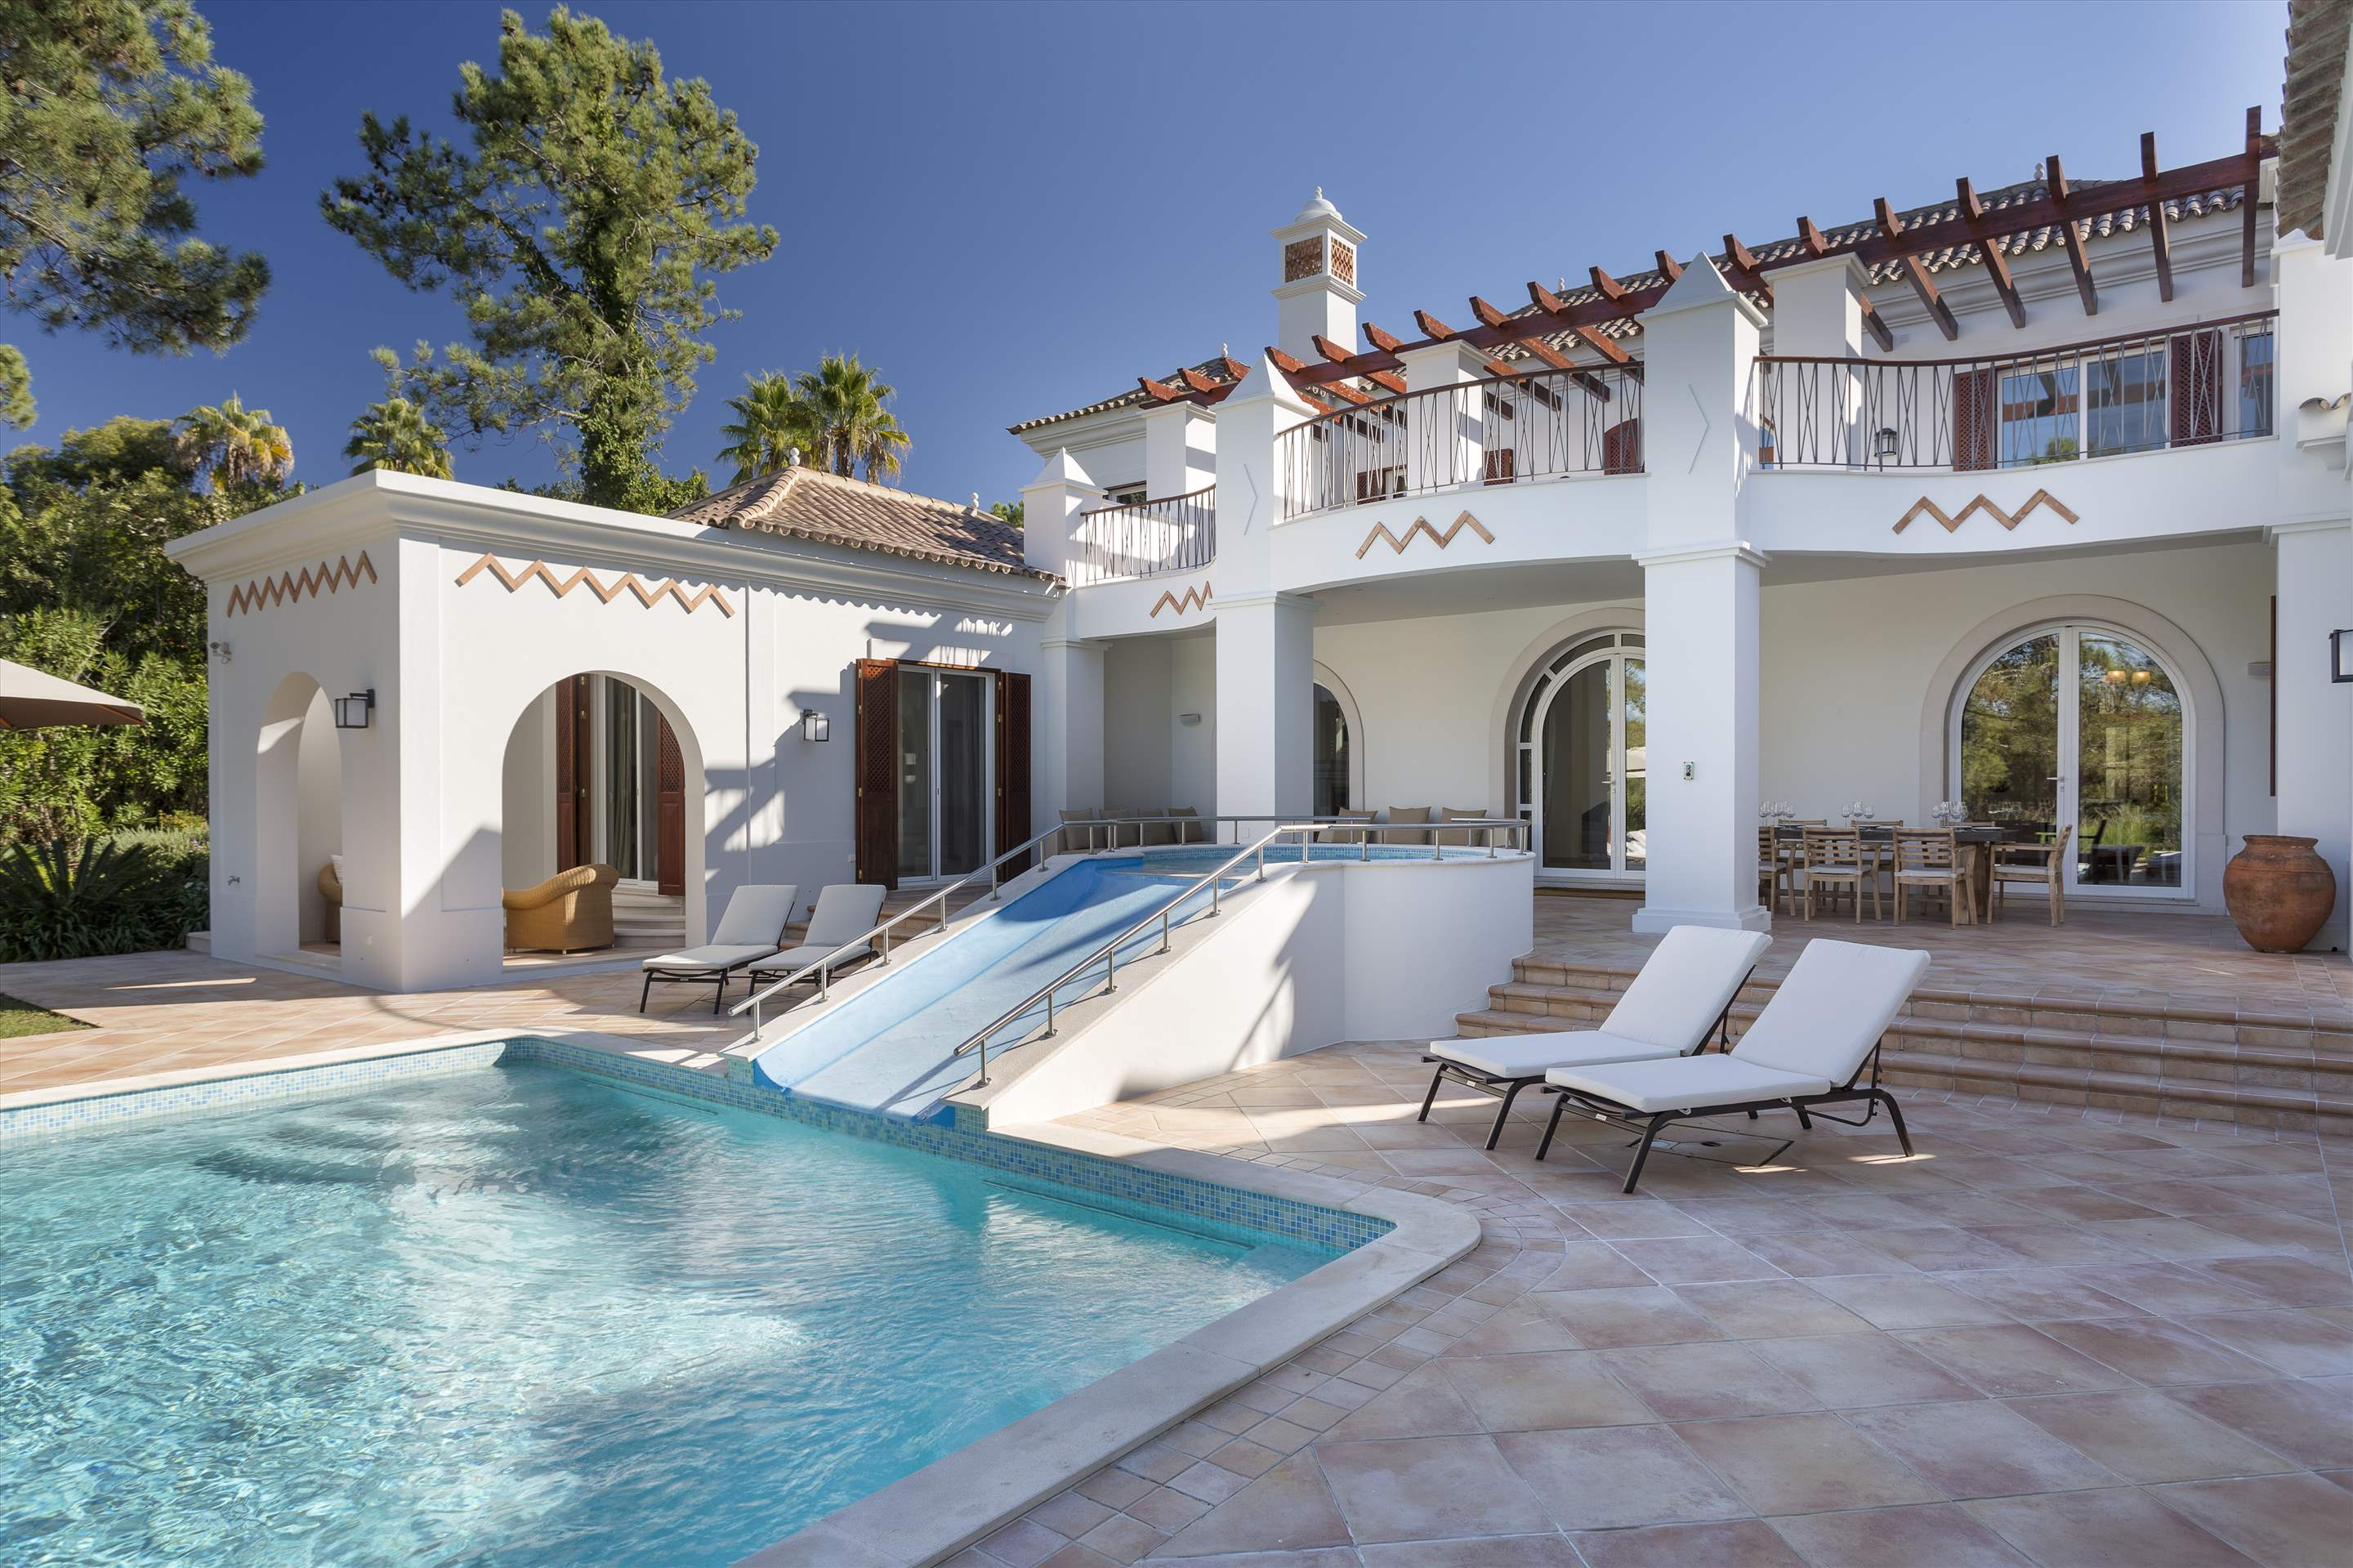 Villa Lantana 2, Main house & Annexe, 6 bedrooms, 6 bedroom villa in Quinta do Lago, Algarve Photo #16